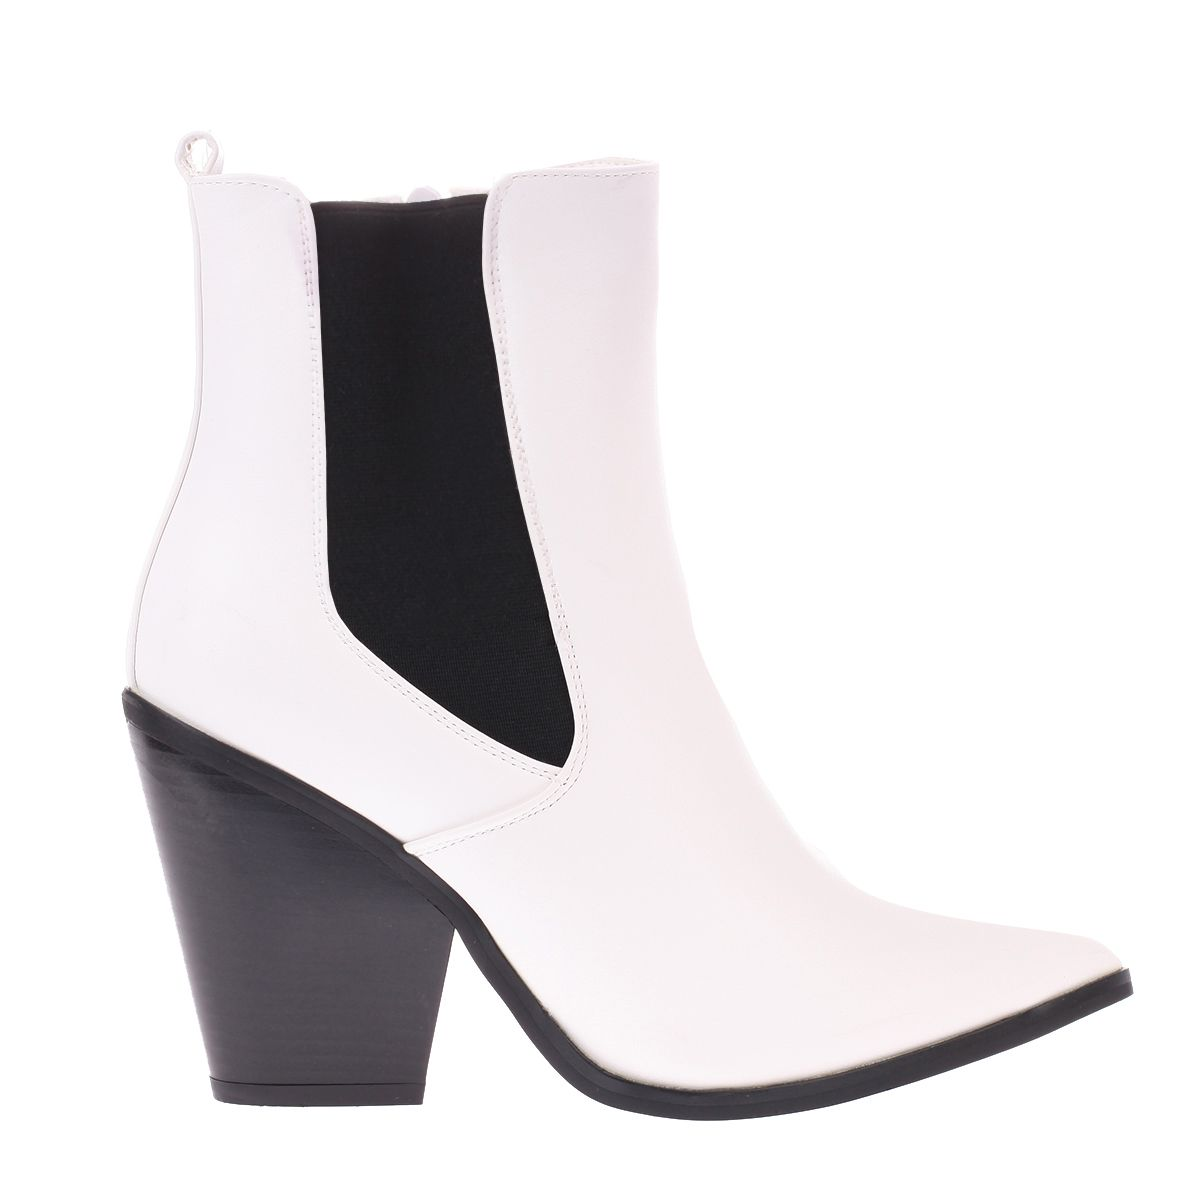 Bottines blanches style western à bout pointu